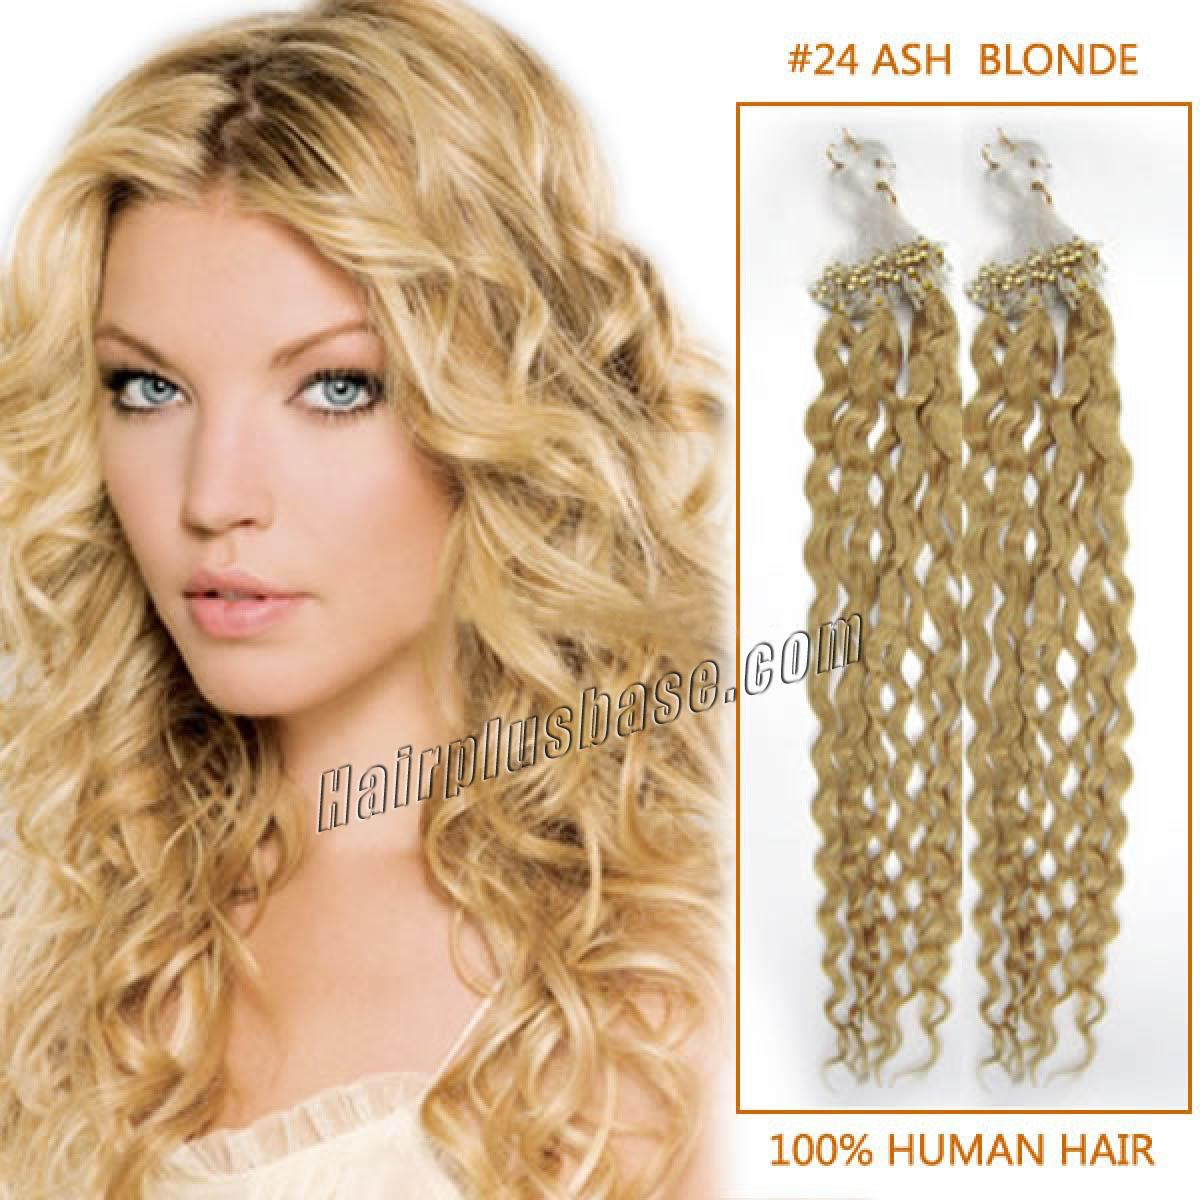 Inch 24 ash blonde curly micro loop human hair extensions 100s 100g 20 inch 24 ash blonde curly micro loop human hair extensions 100s 100g pmusecretfo Choice Image